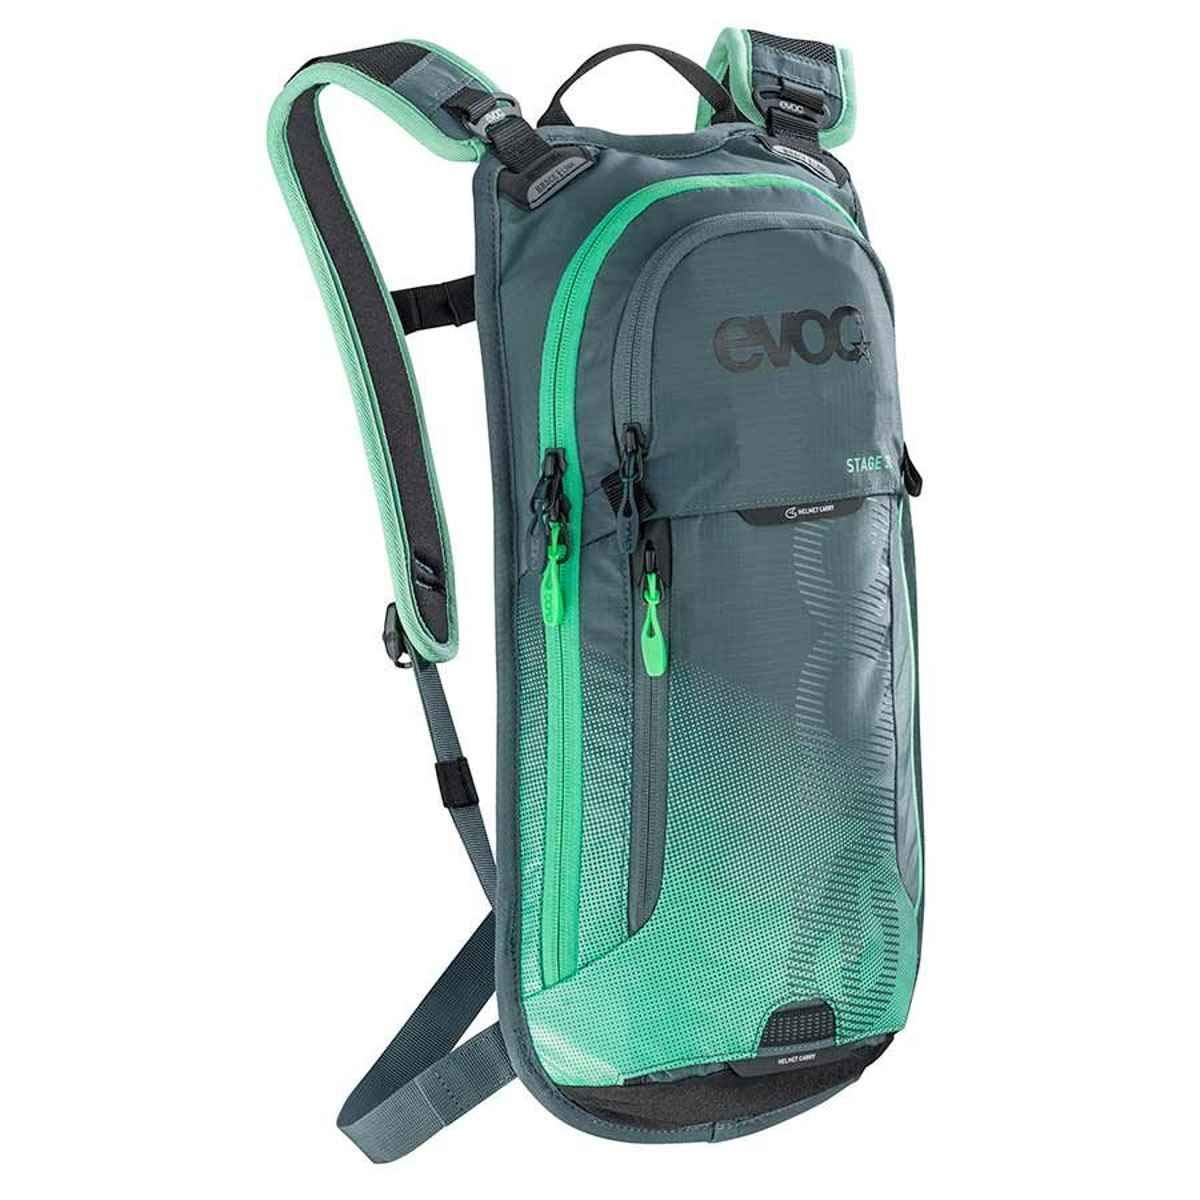 Evoc slate-neon-greenステージ – 3 Litre Hydration Pack with Reservoir (デフォルト、緑)   B073WDZQWZ